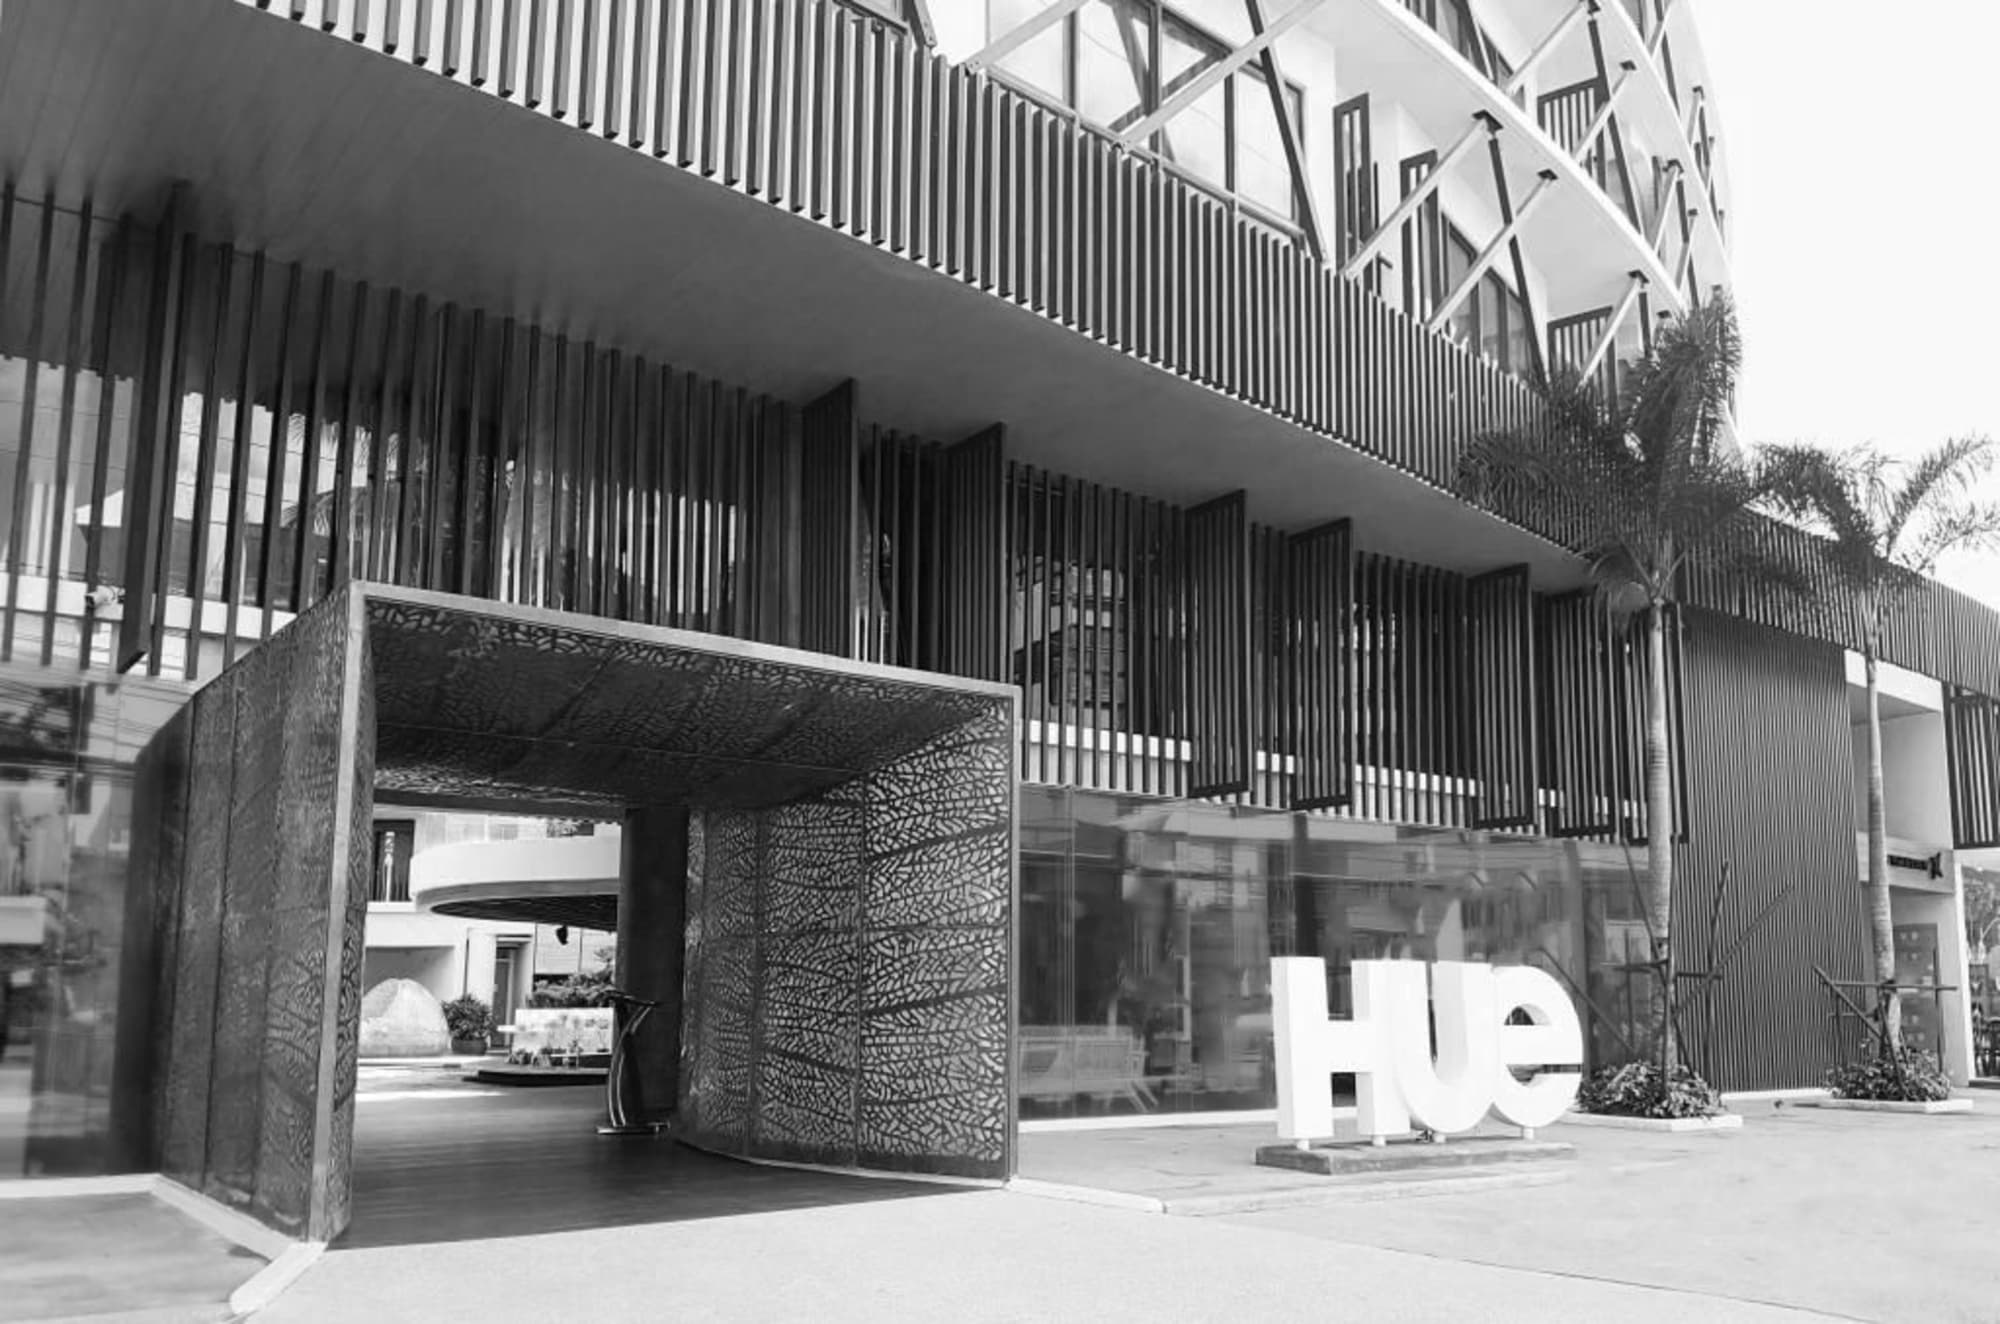 Hue Hotel Boracay Released an Official Statement after the Temporary Closure